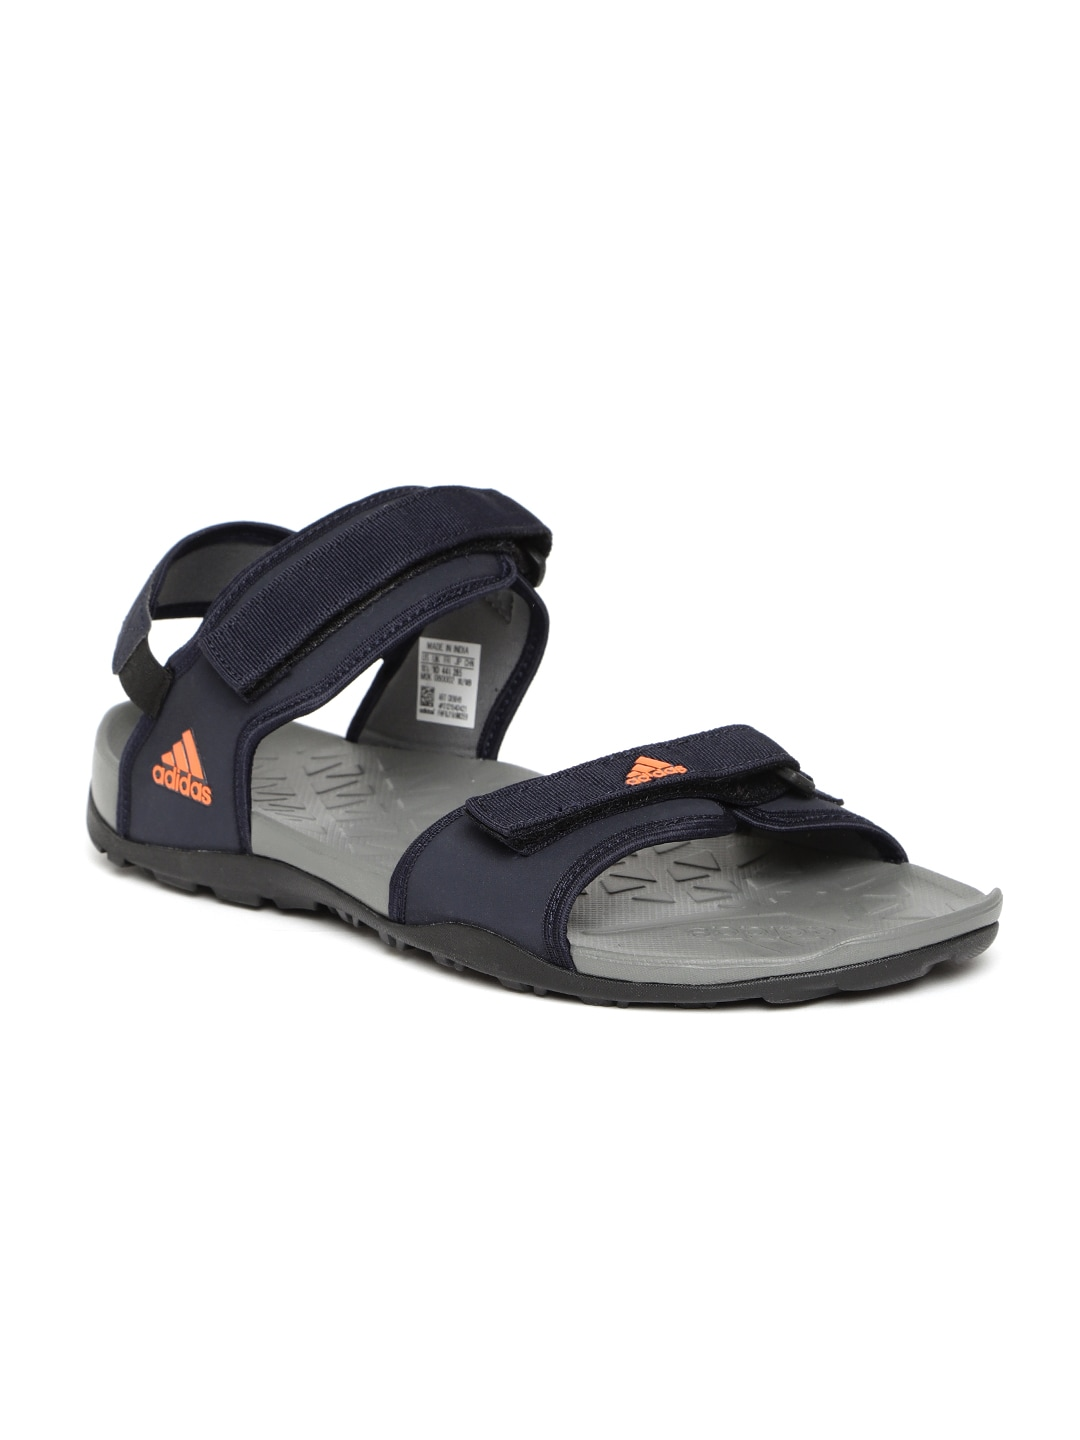 cf4eda1b9a08 Sandals For Men - Buy Men Sandals Online in India